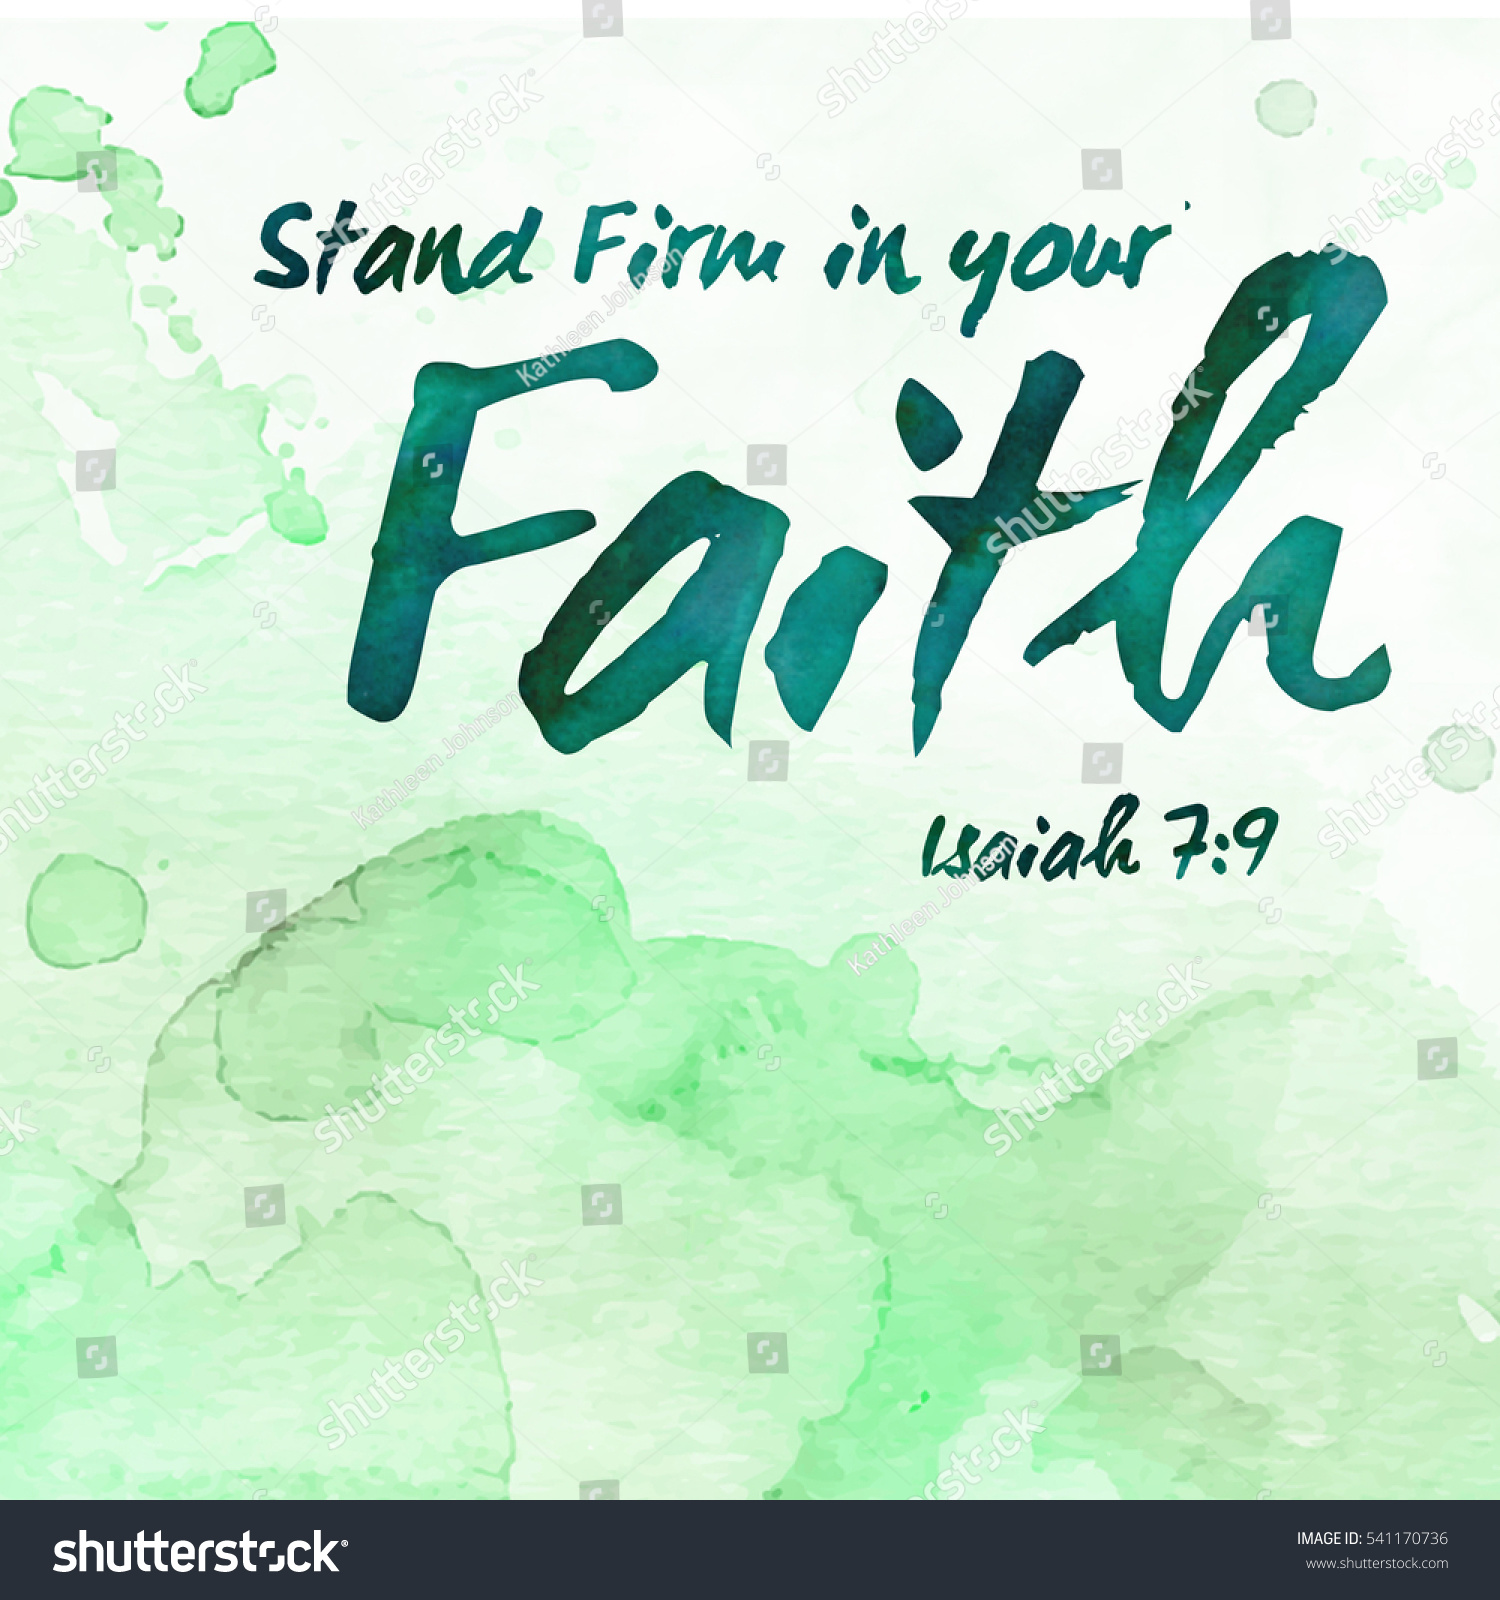 Stand Firm Designs : Stand firm your faith bible verse stock illustration